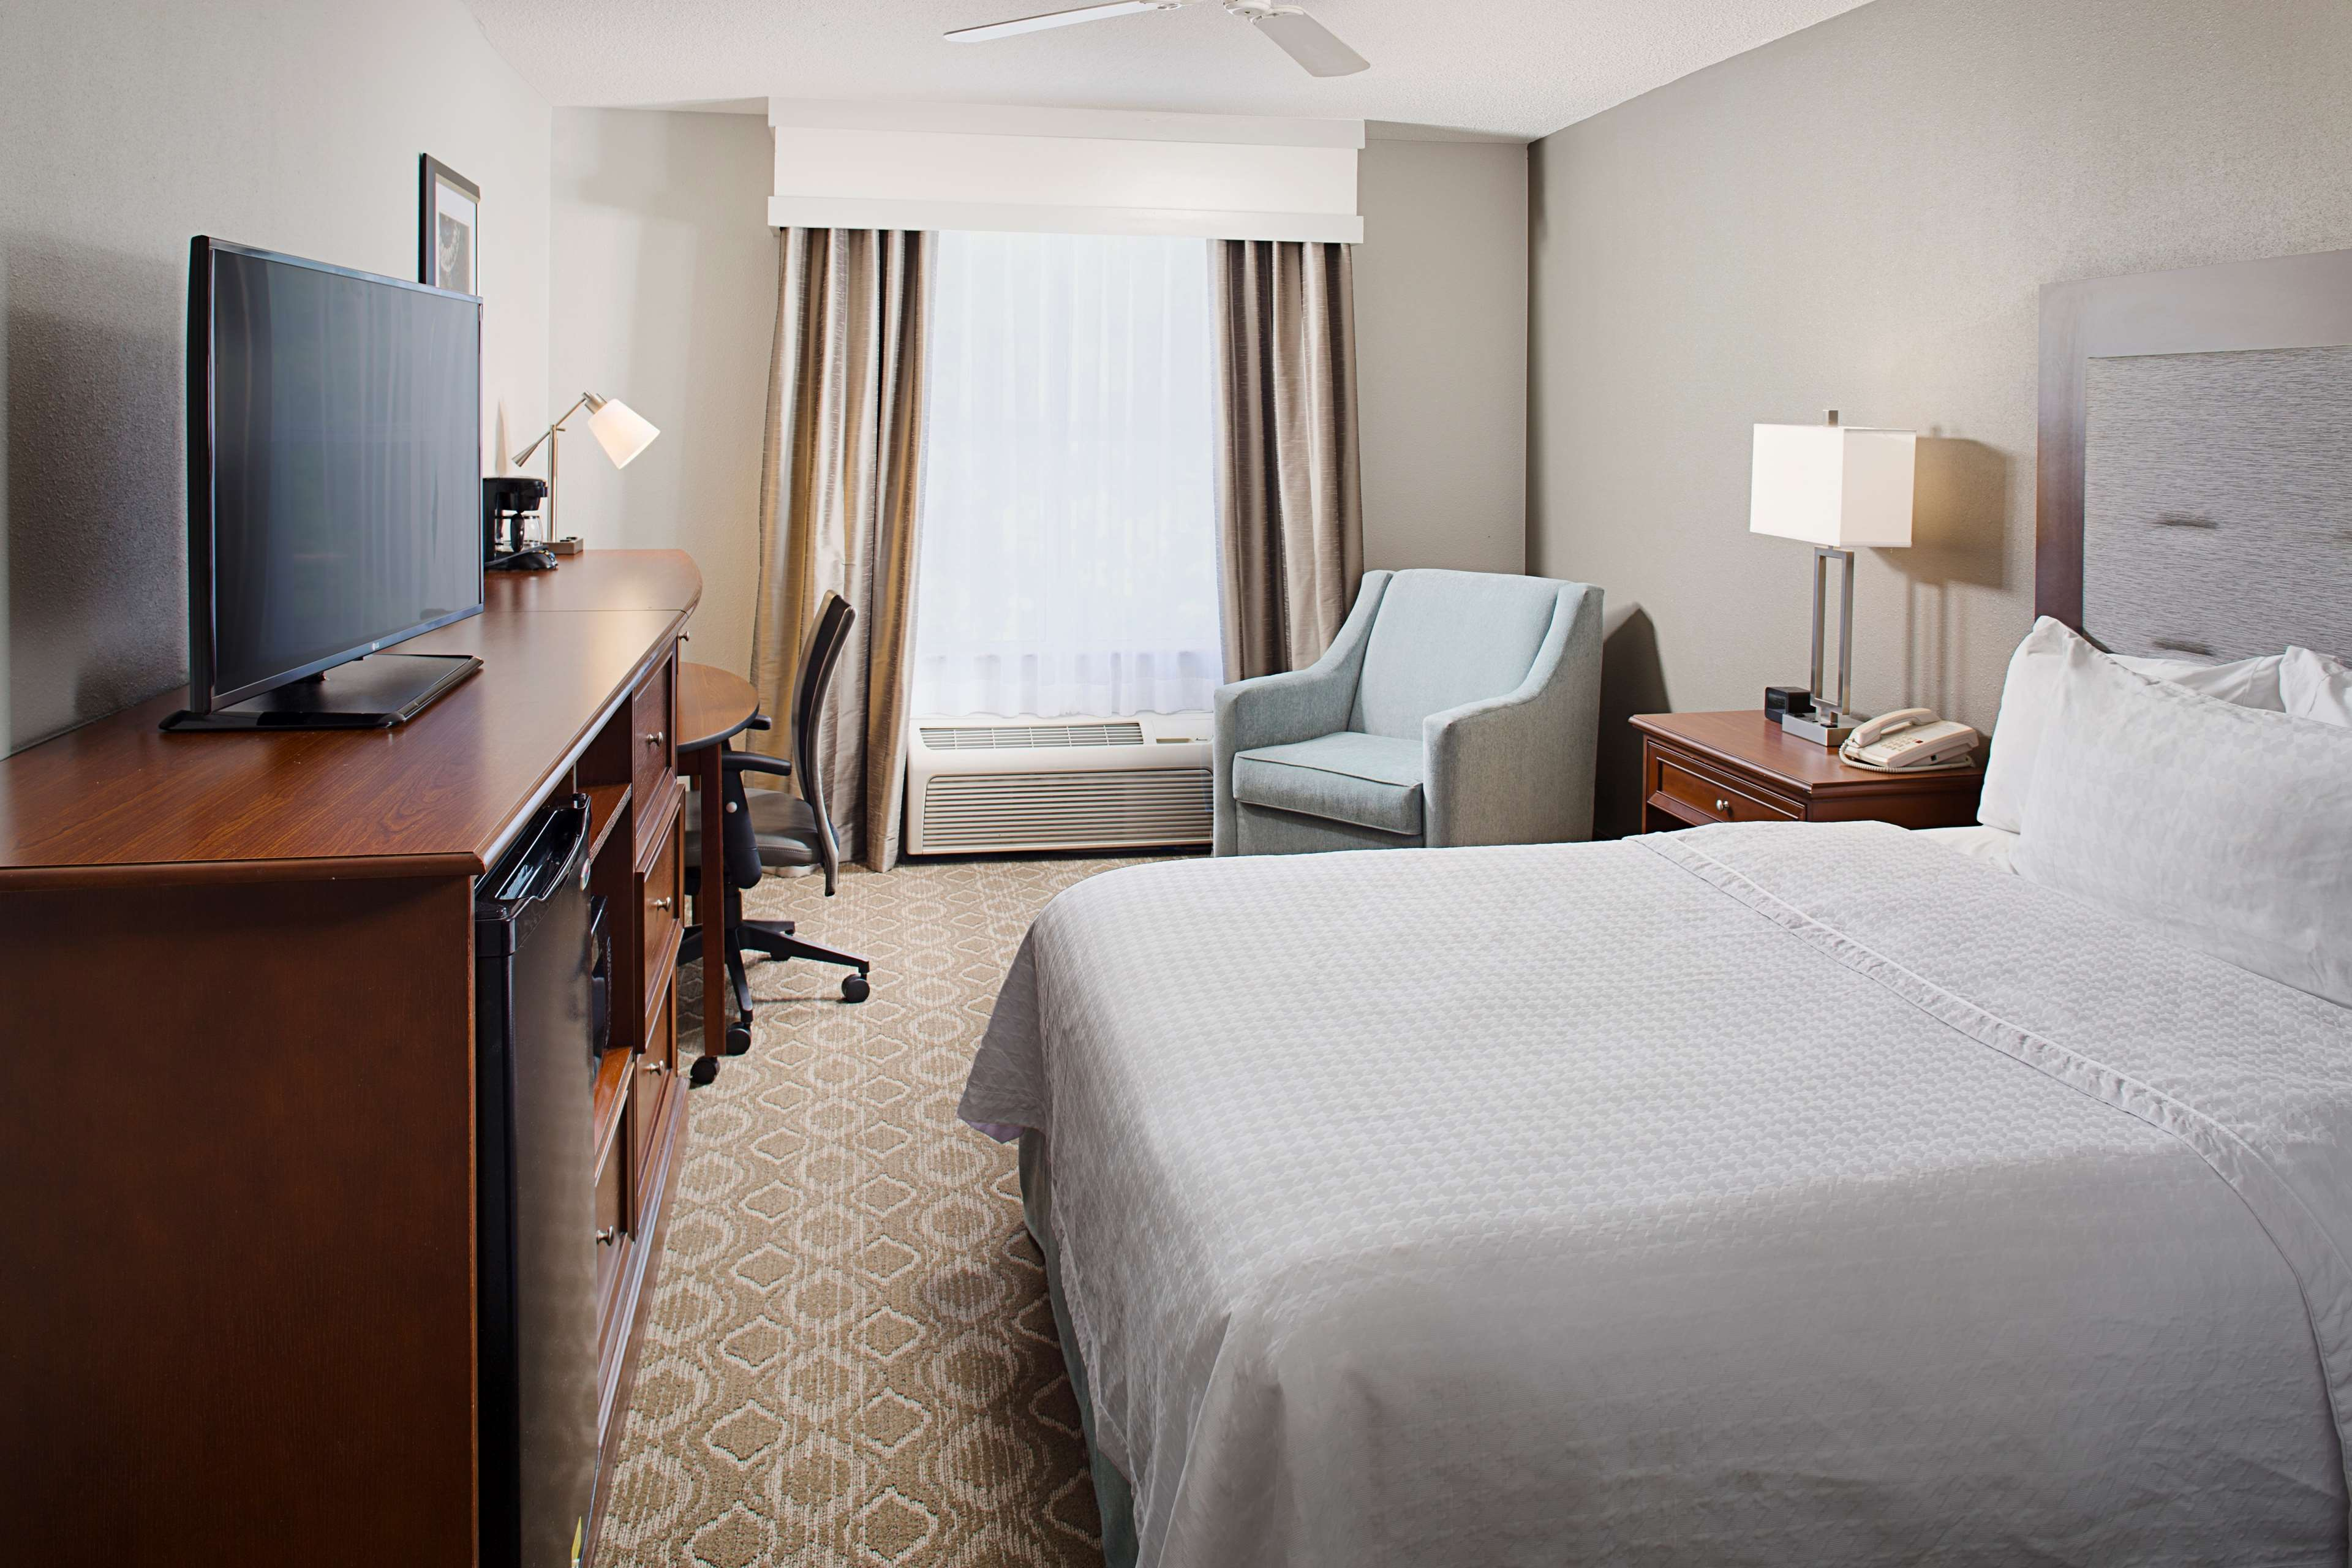 Homewood Suites by Hilton Raleigh/Cary image 30